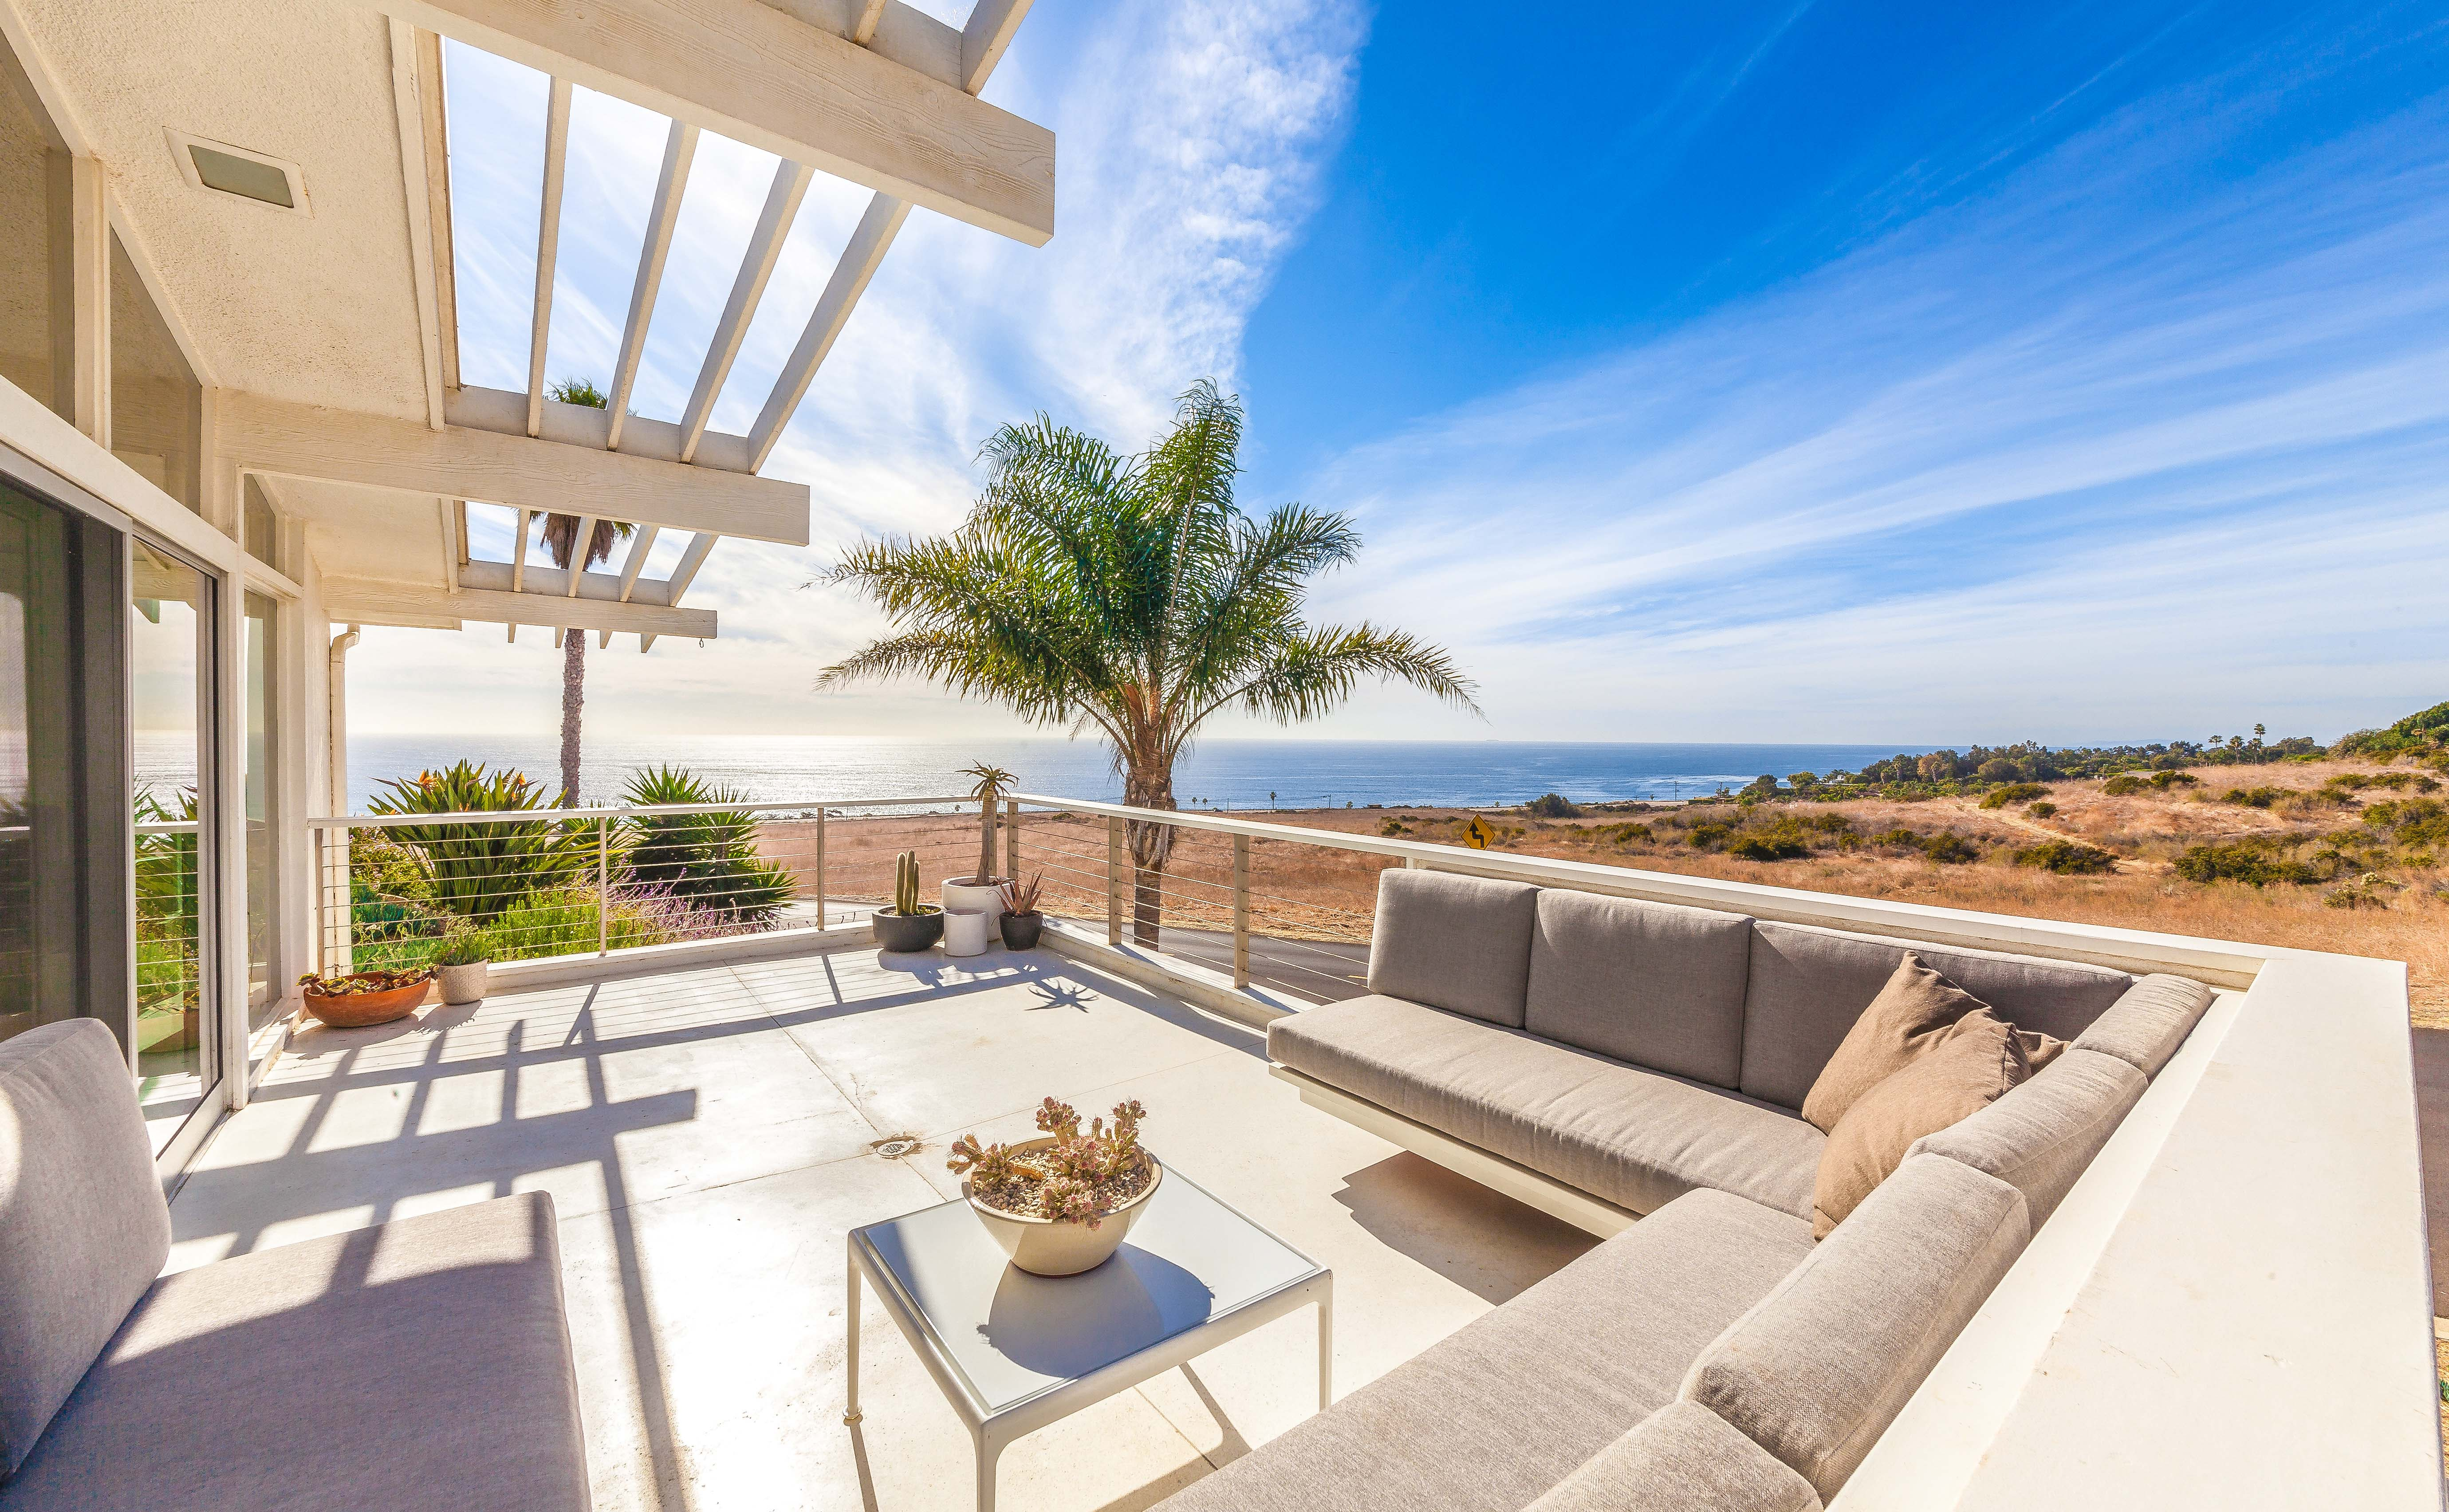 2017 Showed Us The Strongest Median Price On Record For Malibu Beach Housealibu Landside Houses Since Real Estate Is Known It S High